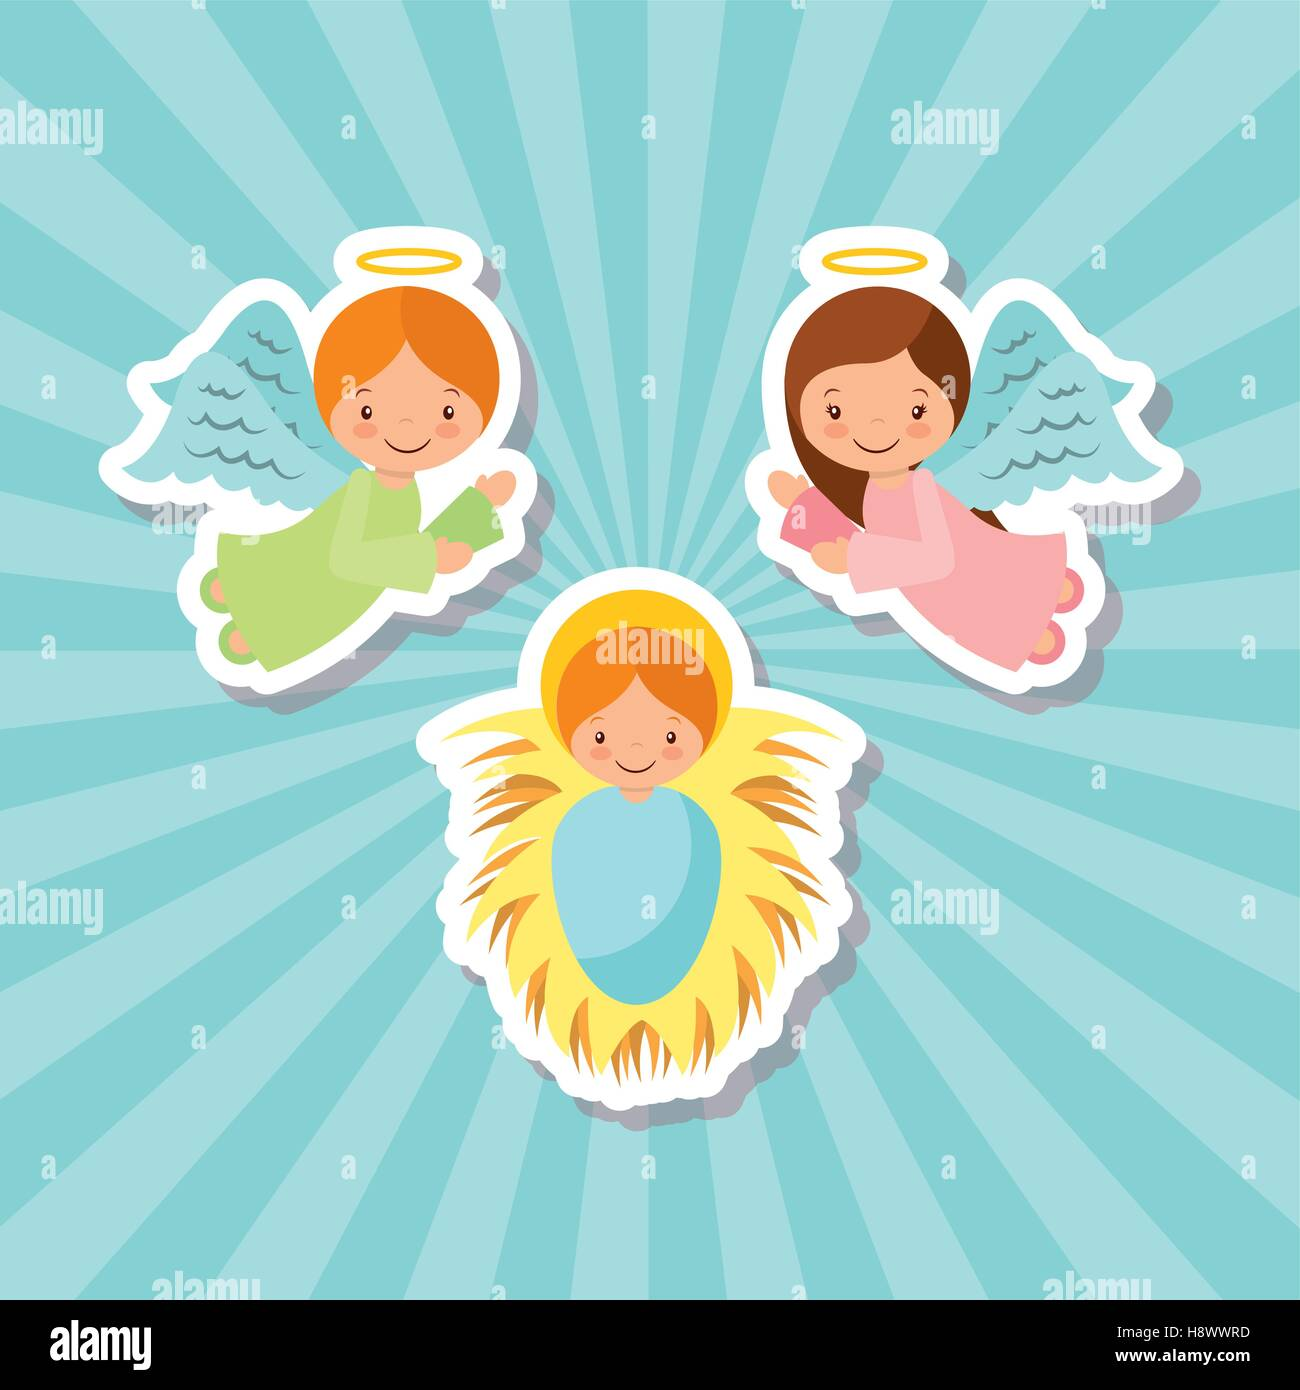 Cartoon Angels With Baby Jesus Characters Over Blue Background Vector Illustration